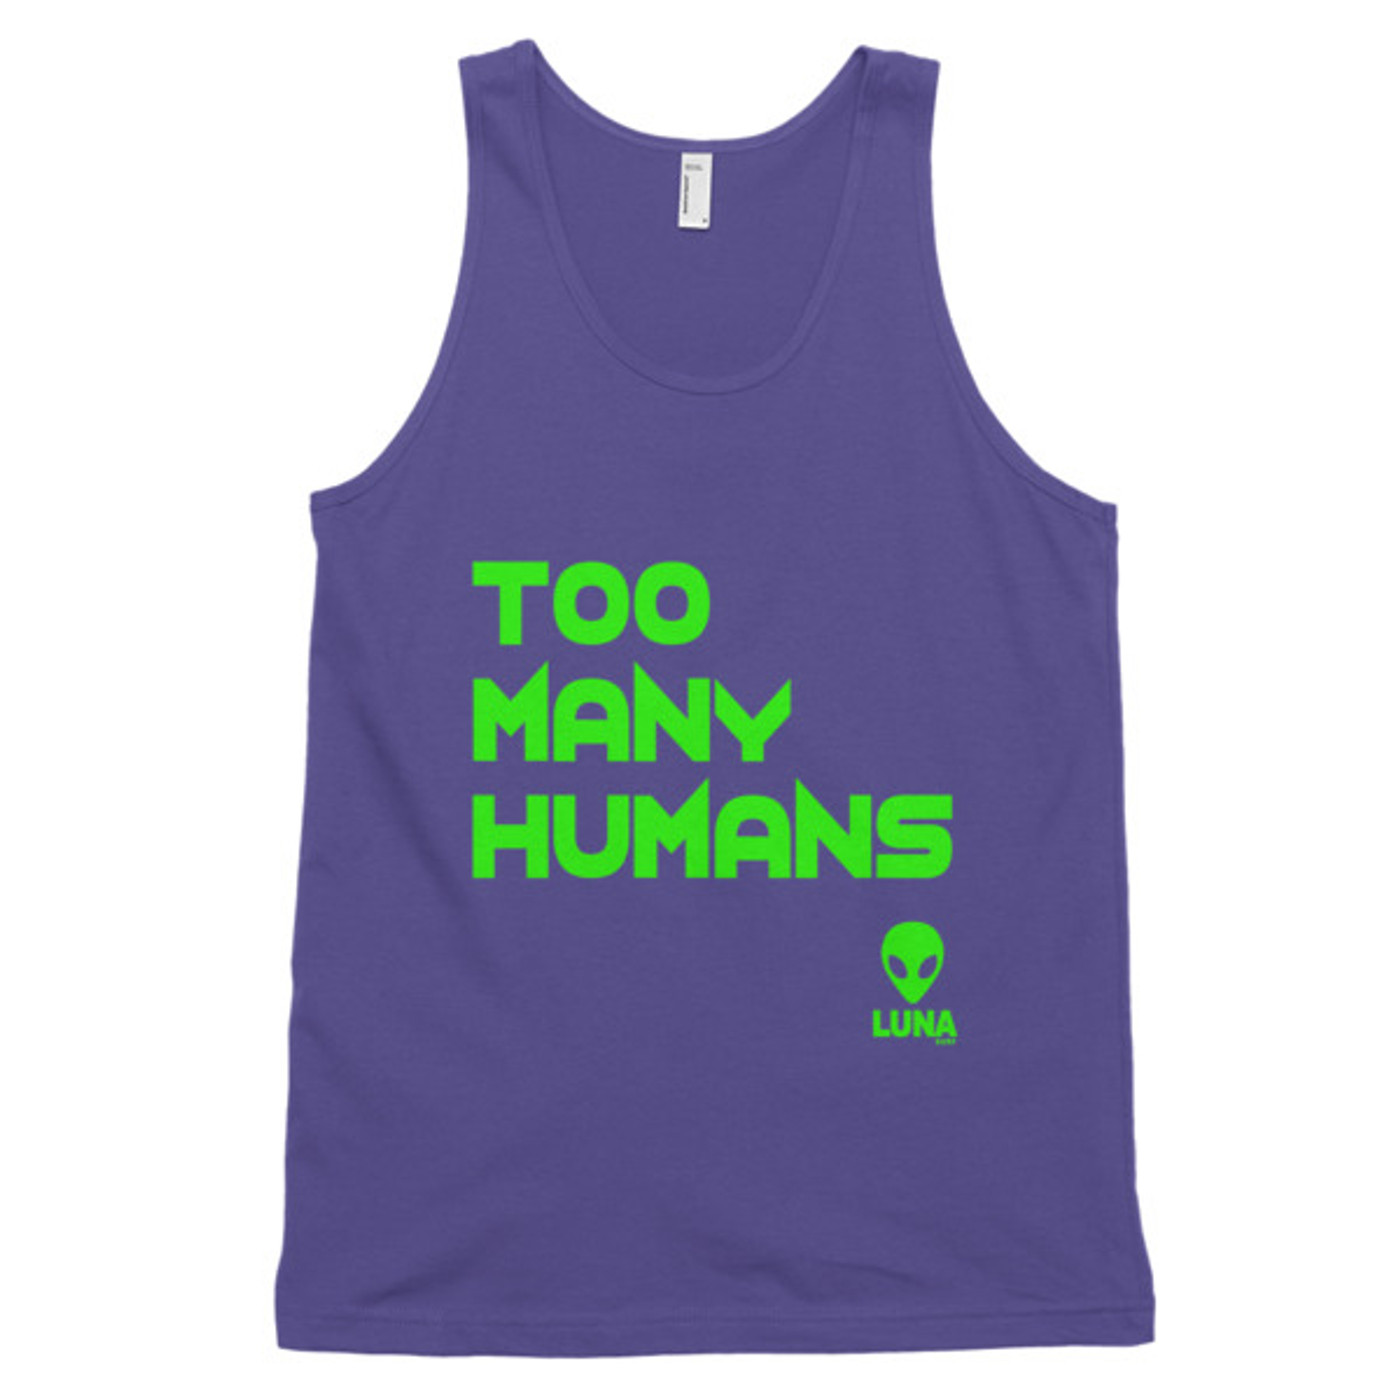 Too Many Humans Classic tank top (unisex)